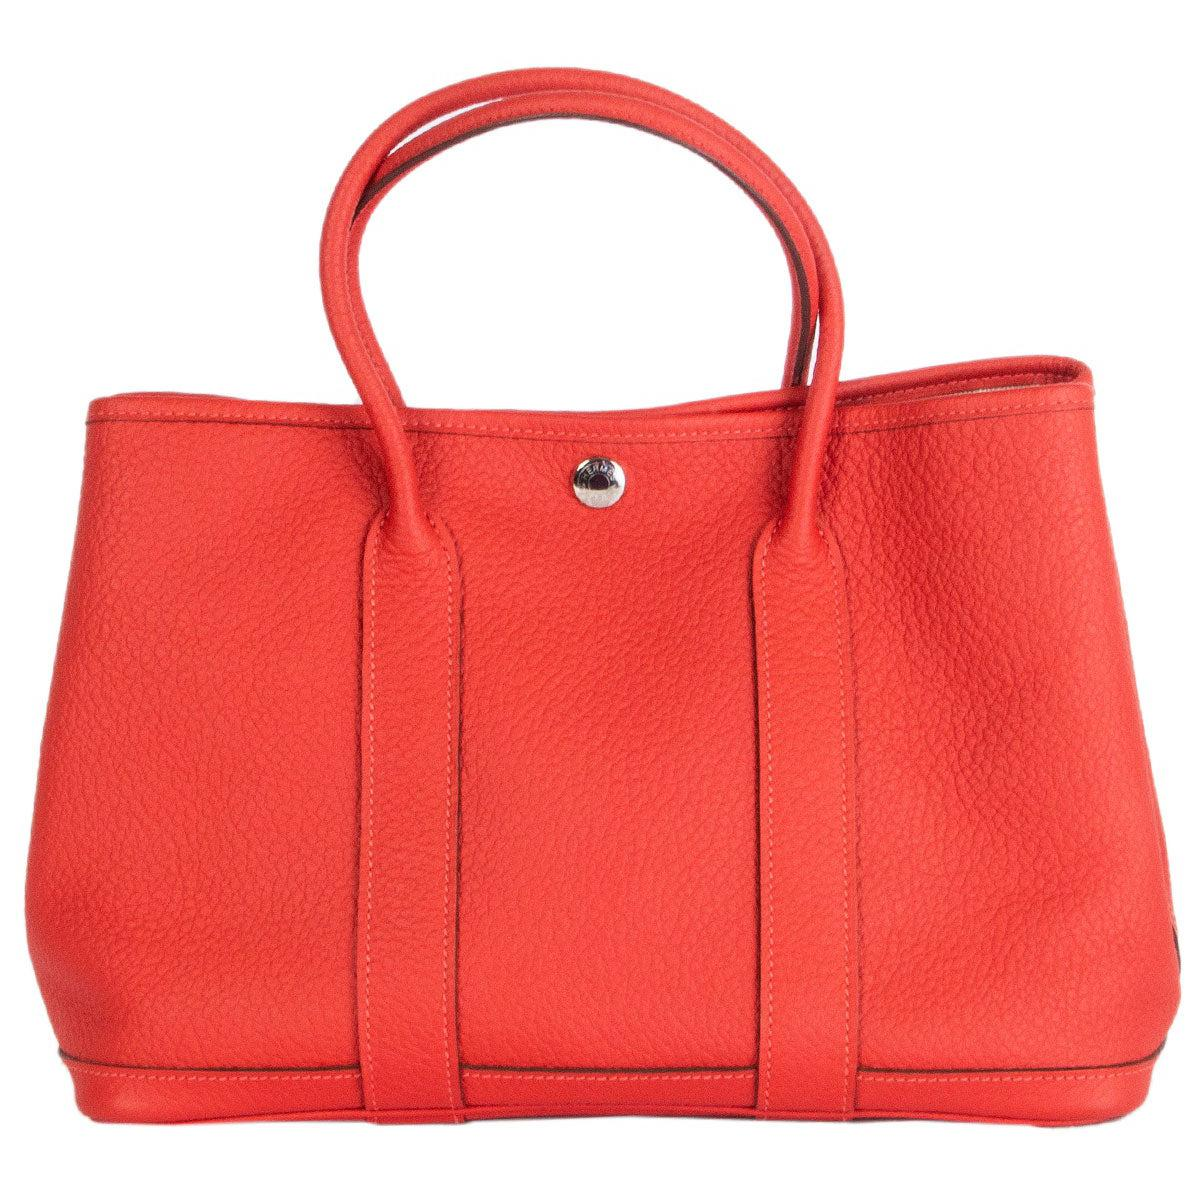 HERMES Capucine coral red Country leather GARDEN PARTY 30 Tote Bag